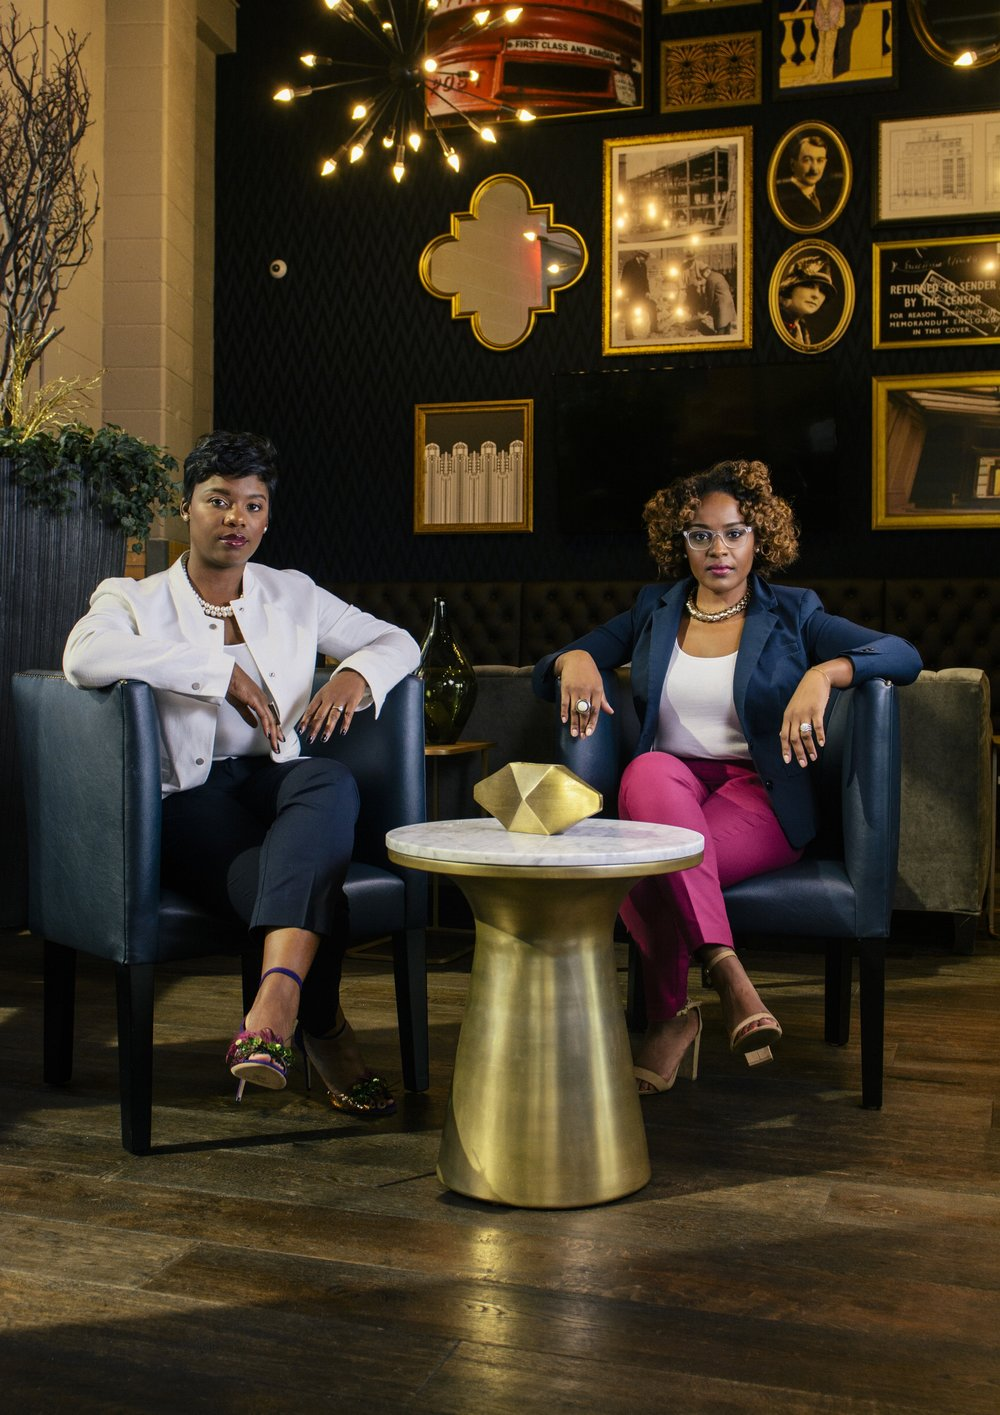 - Shawntera Hardy and Camille A. Thomas are entrepreneurs committed to empowering and advancing women business owners. They both own and operate businesses and understand the importance of being seen and invested in. The two found themselves disheartened by the lack of representation of Black women business owners in local and national publications and platforms. This started the journey that birthed Fearless Commerce  and there is no turning back. Shawntera and Camille are committed to sharing the voices, the experiences, the stories and the images of successful Black women business owners.